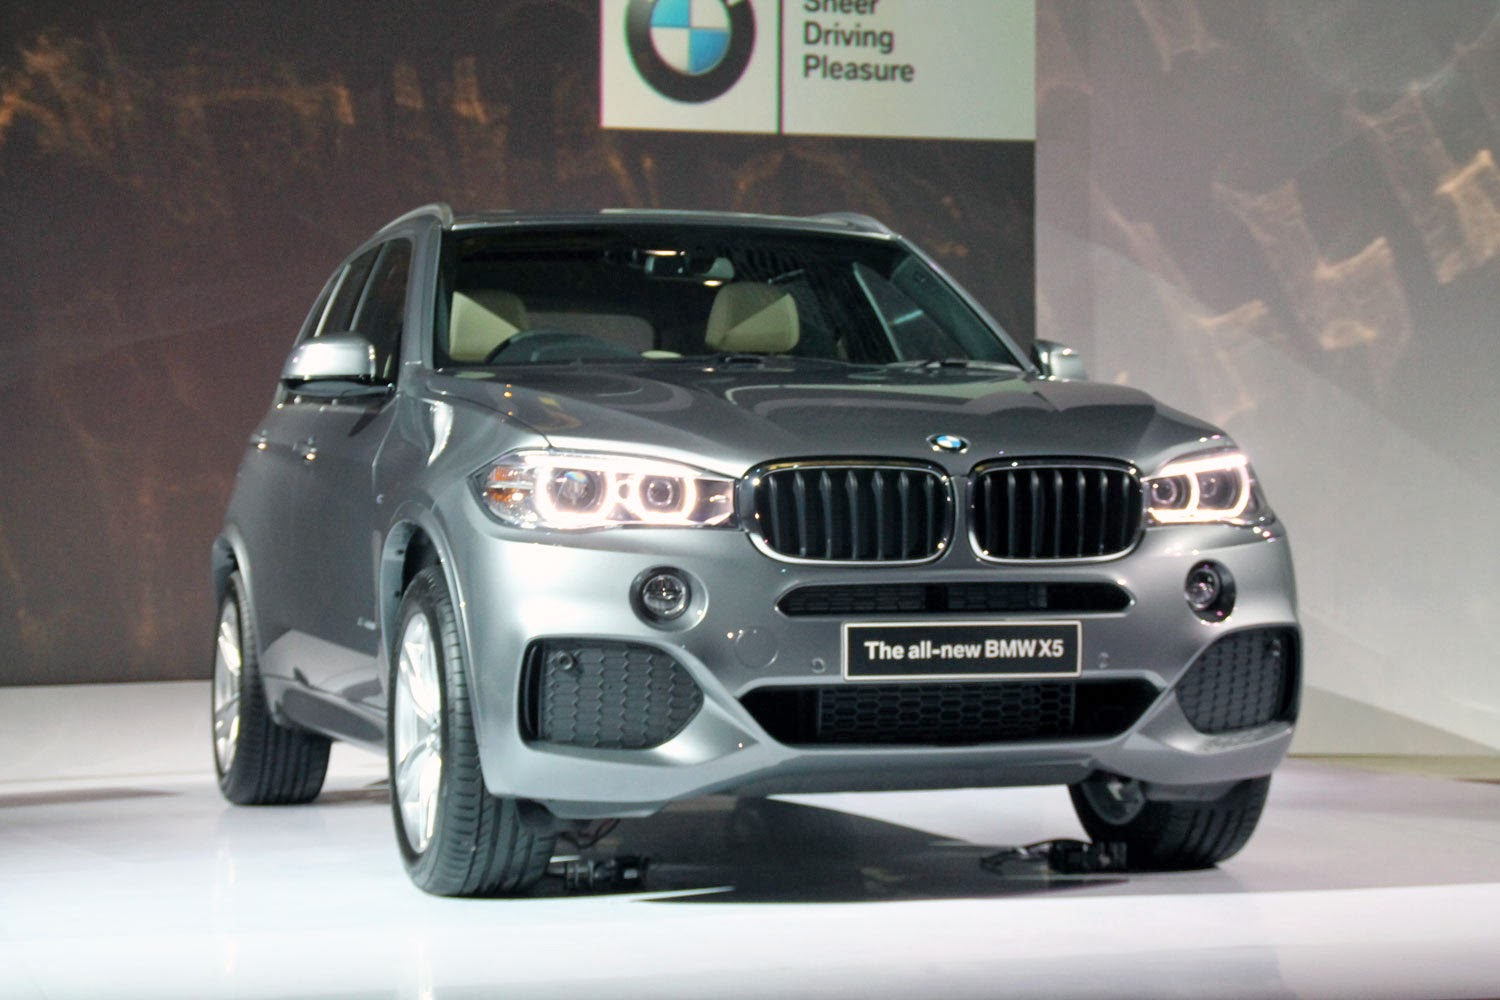 BMW Group Indonesia officially introduced the all-new third generation BMW X5. For the Indonesian market this Sports Activity Vehicle comes in two variants , the BMW X5 xDrive35i and xDrive50i M Sport.